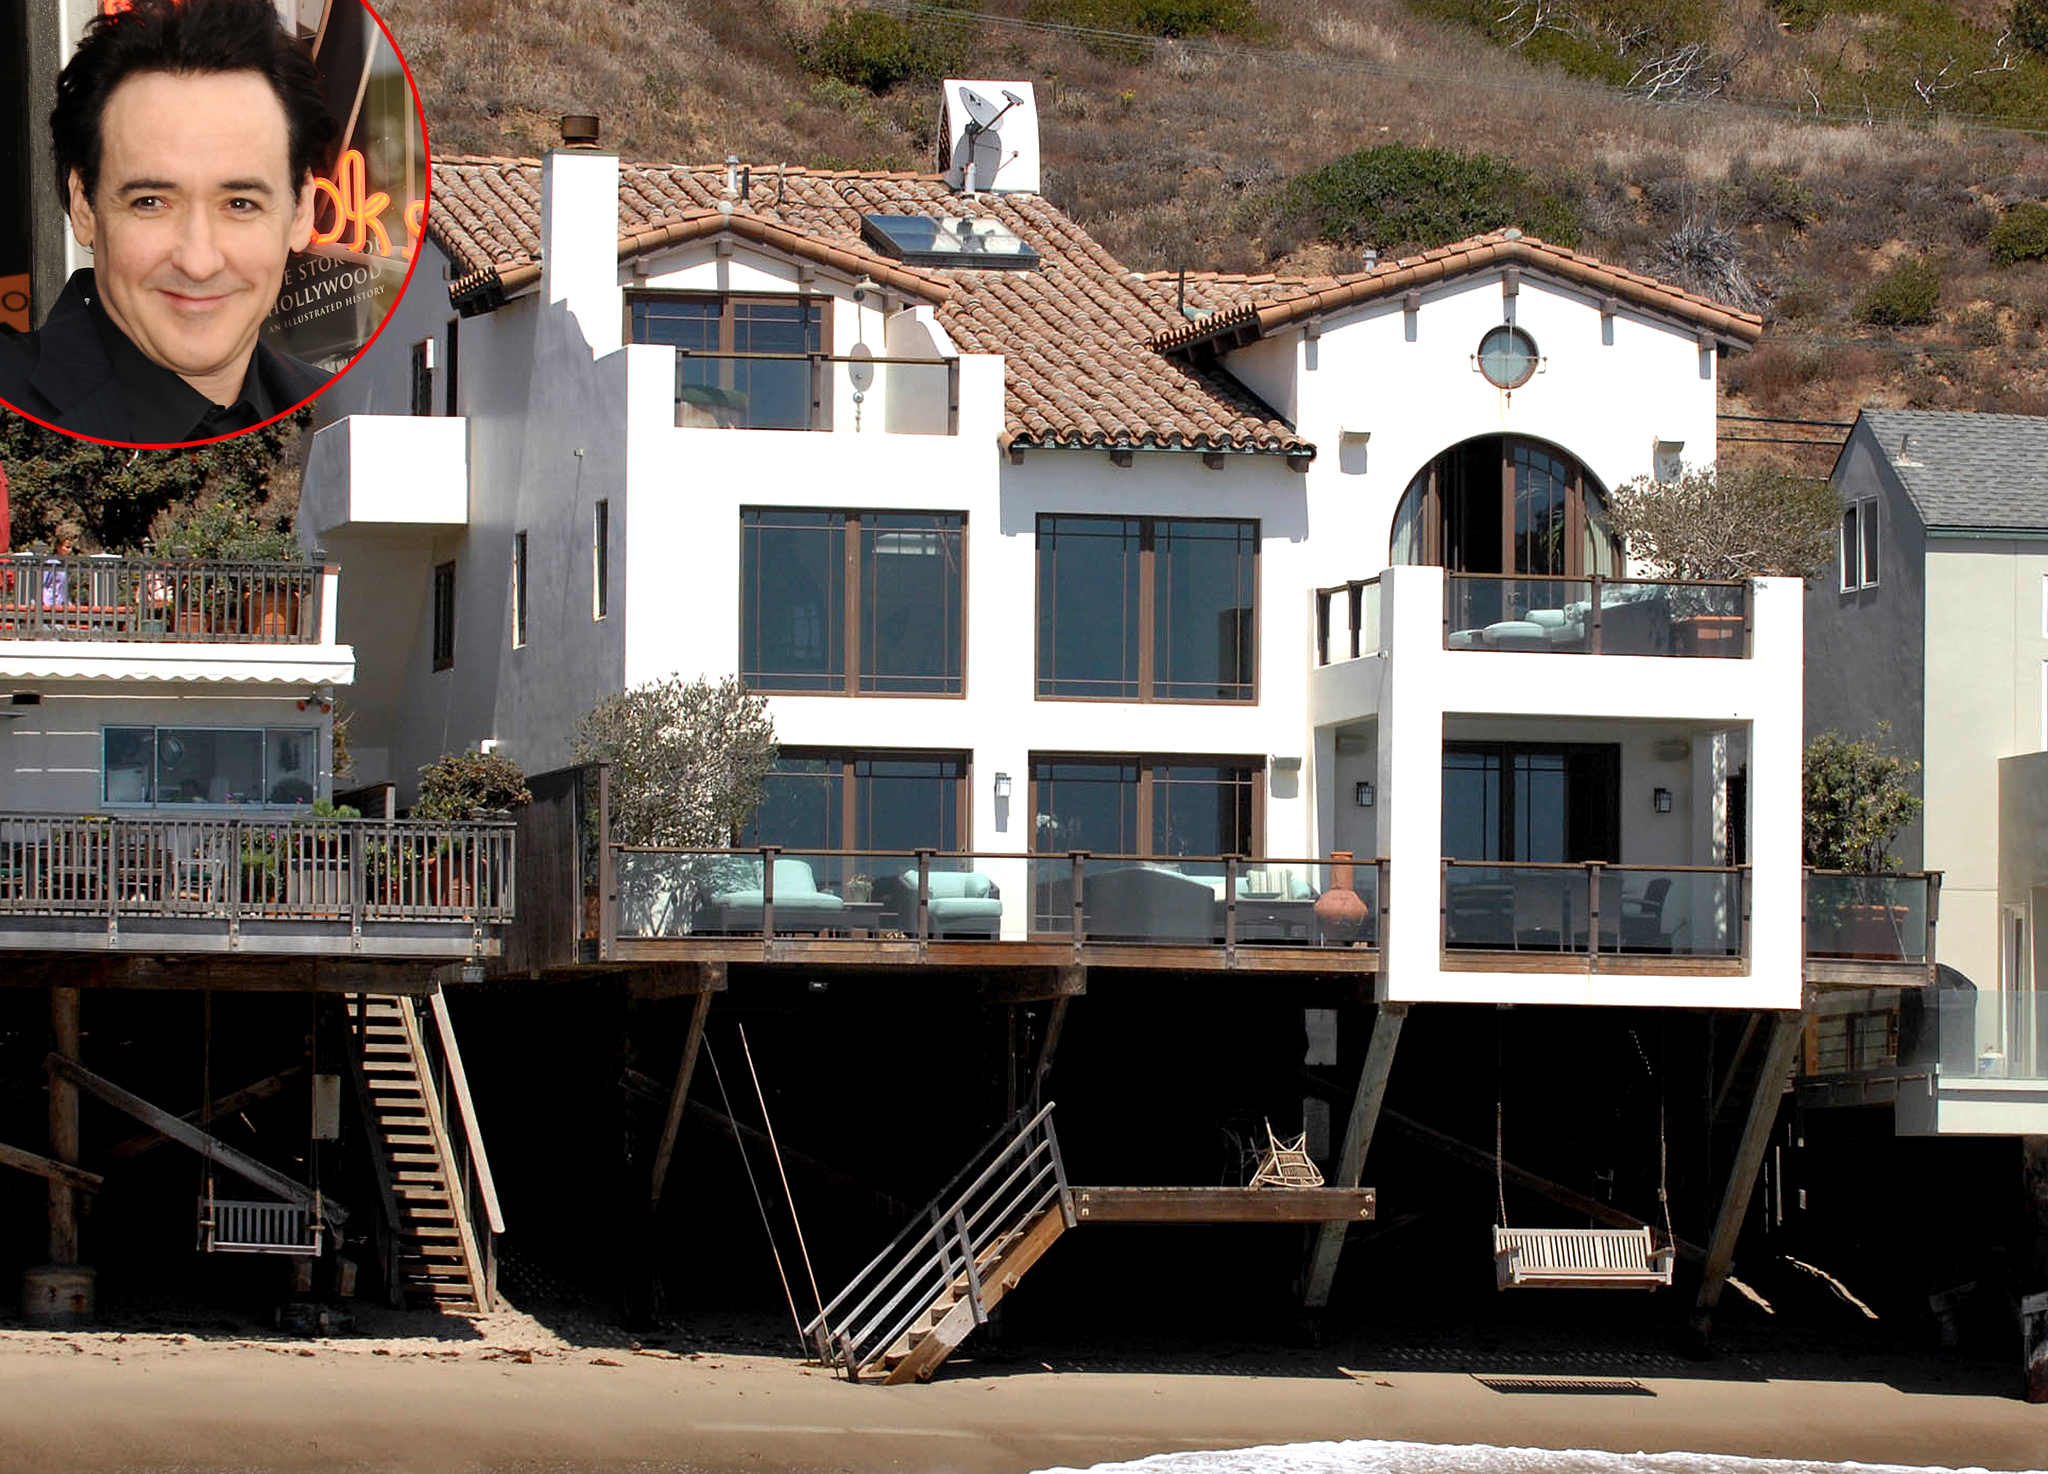 John Cusack's Malibu home (Splash News/Getty Images, inset)